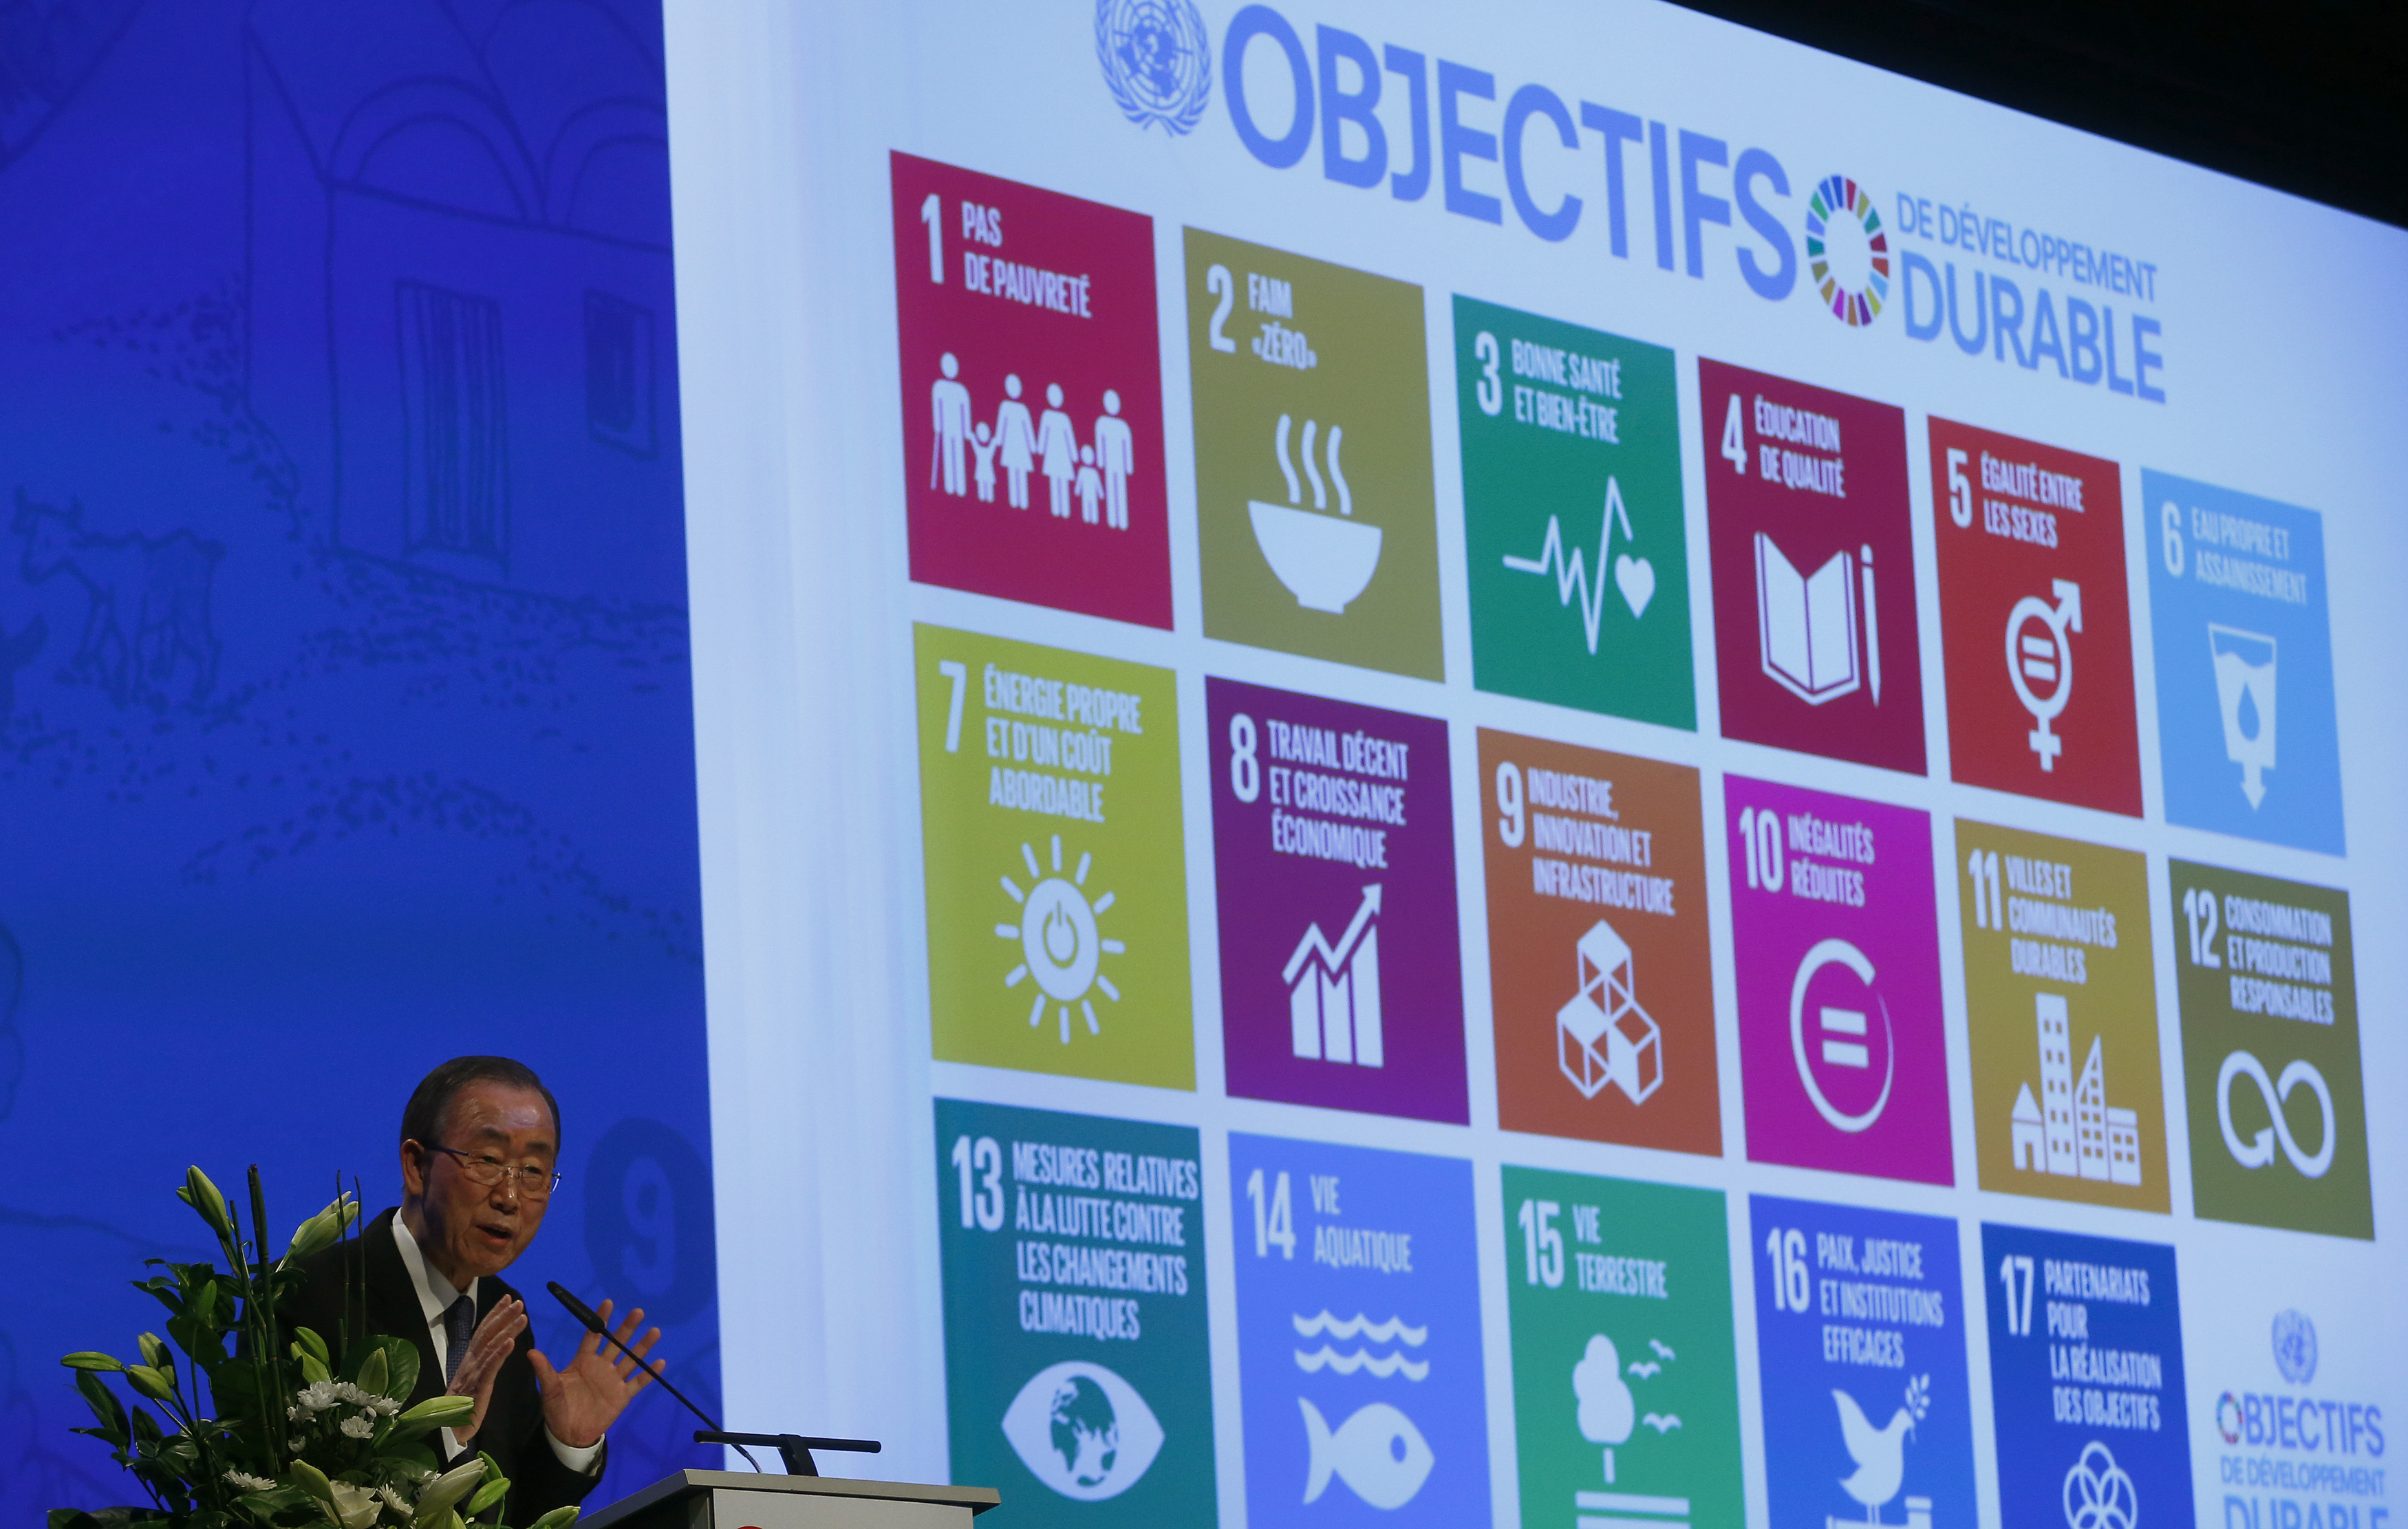 United Nations Secretary-General Ban Ki-Moon addresses the Annual Conference of Swiss Developement Cooperation in Zurich, Switzerland January 22, 2016. On the screen behind are displayed the 17 goals of UN's 2030 Agenda for Sustainable Development.    REUTERS/Arnd Wiegmann - LR1EC1M141E1G